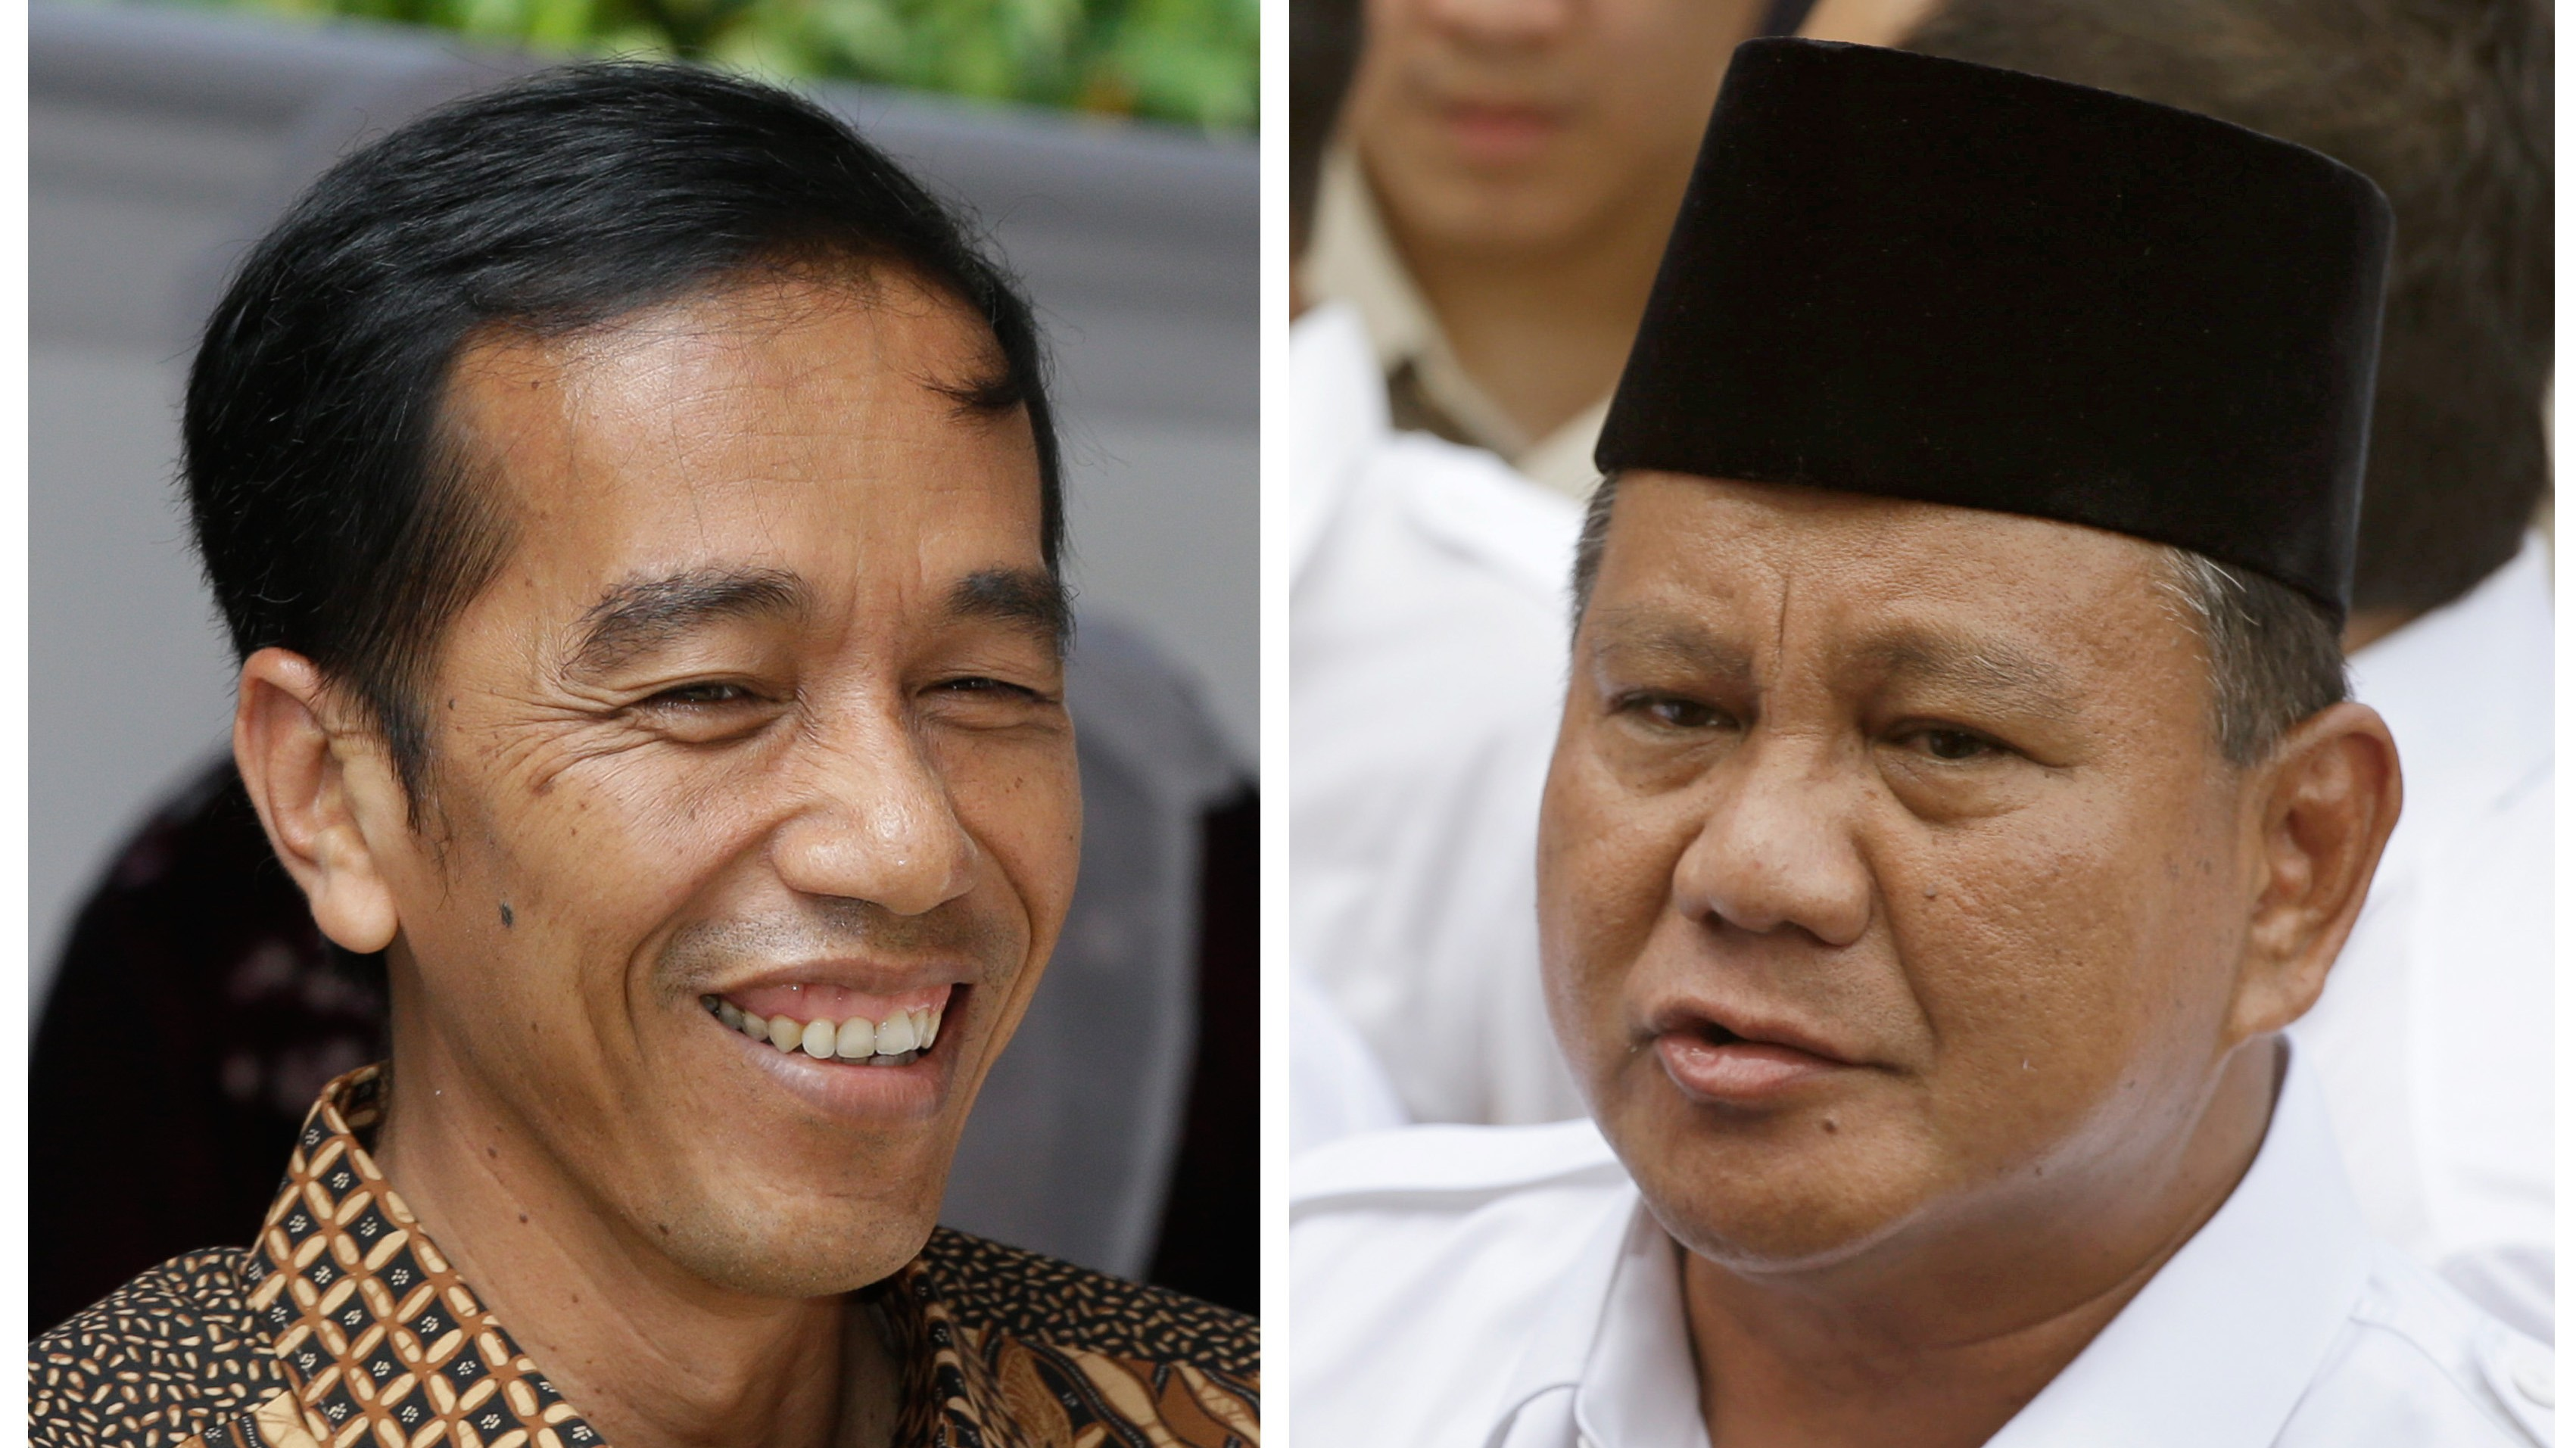 Common Man and Military Man Face Off in Pivotal Indonesian Election